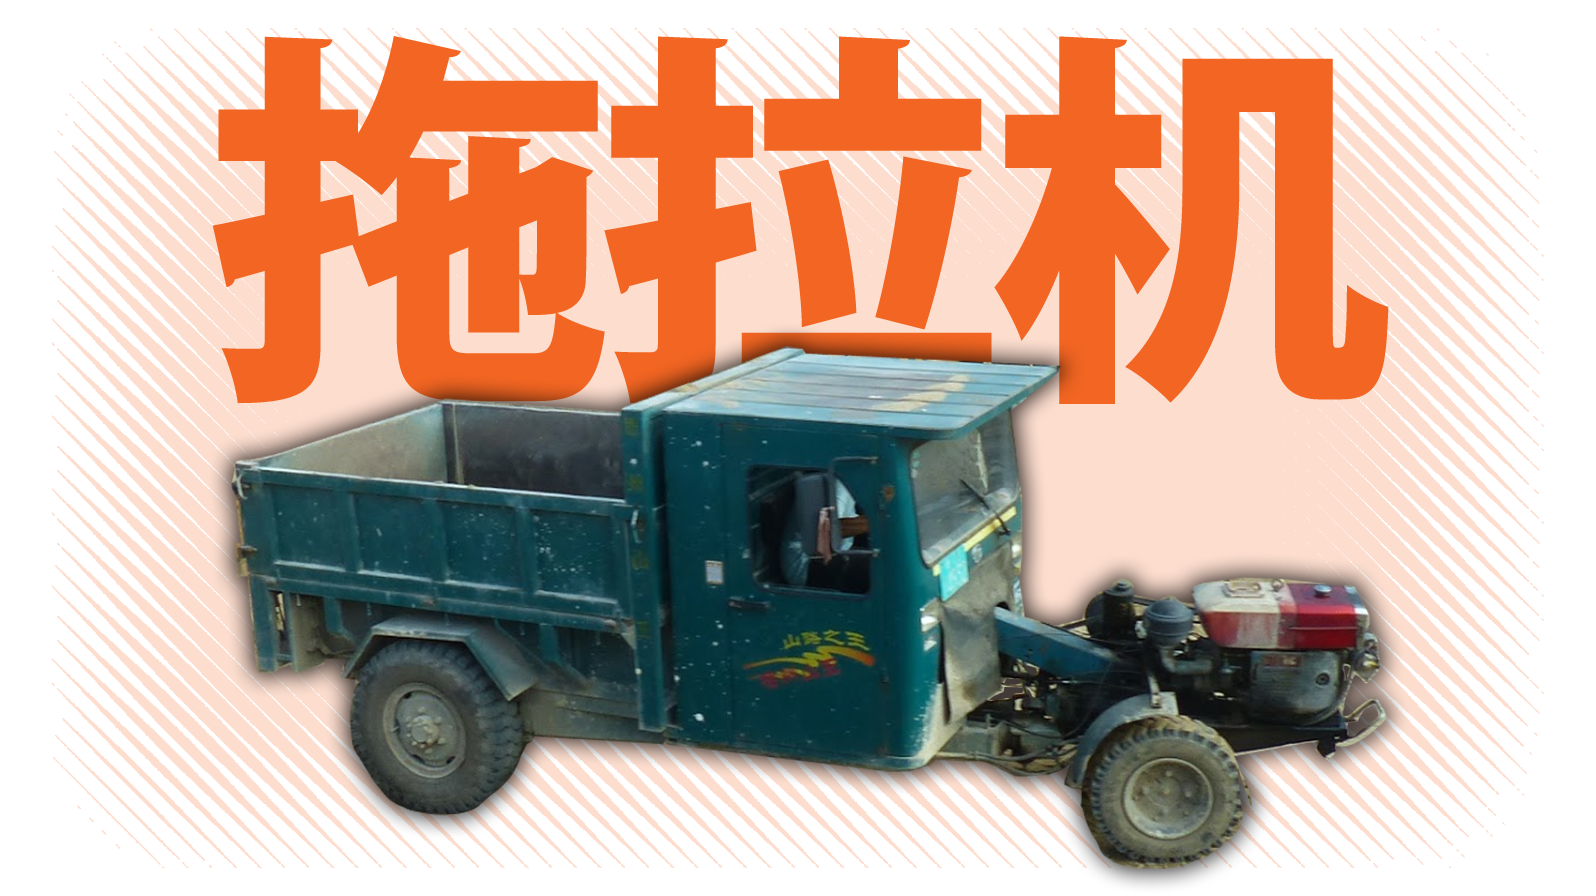 How China Built Some Of The World's Most Versatile Vehicles Around A $150 Engine